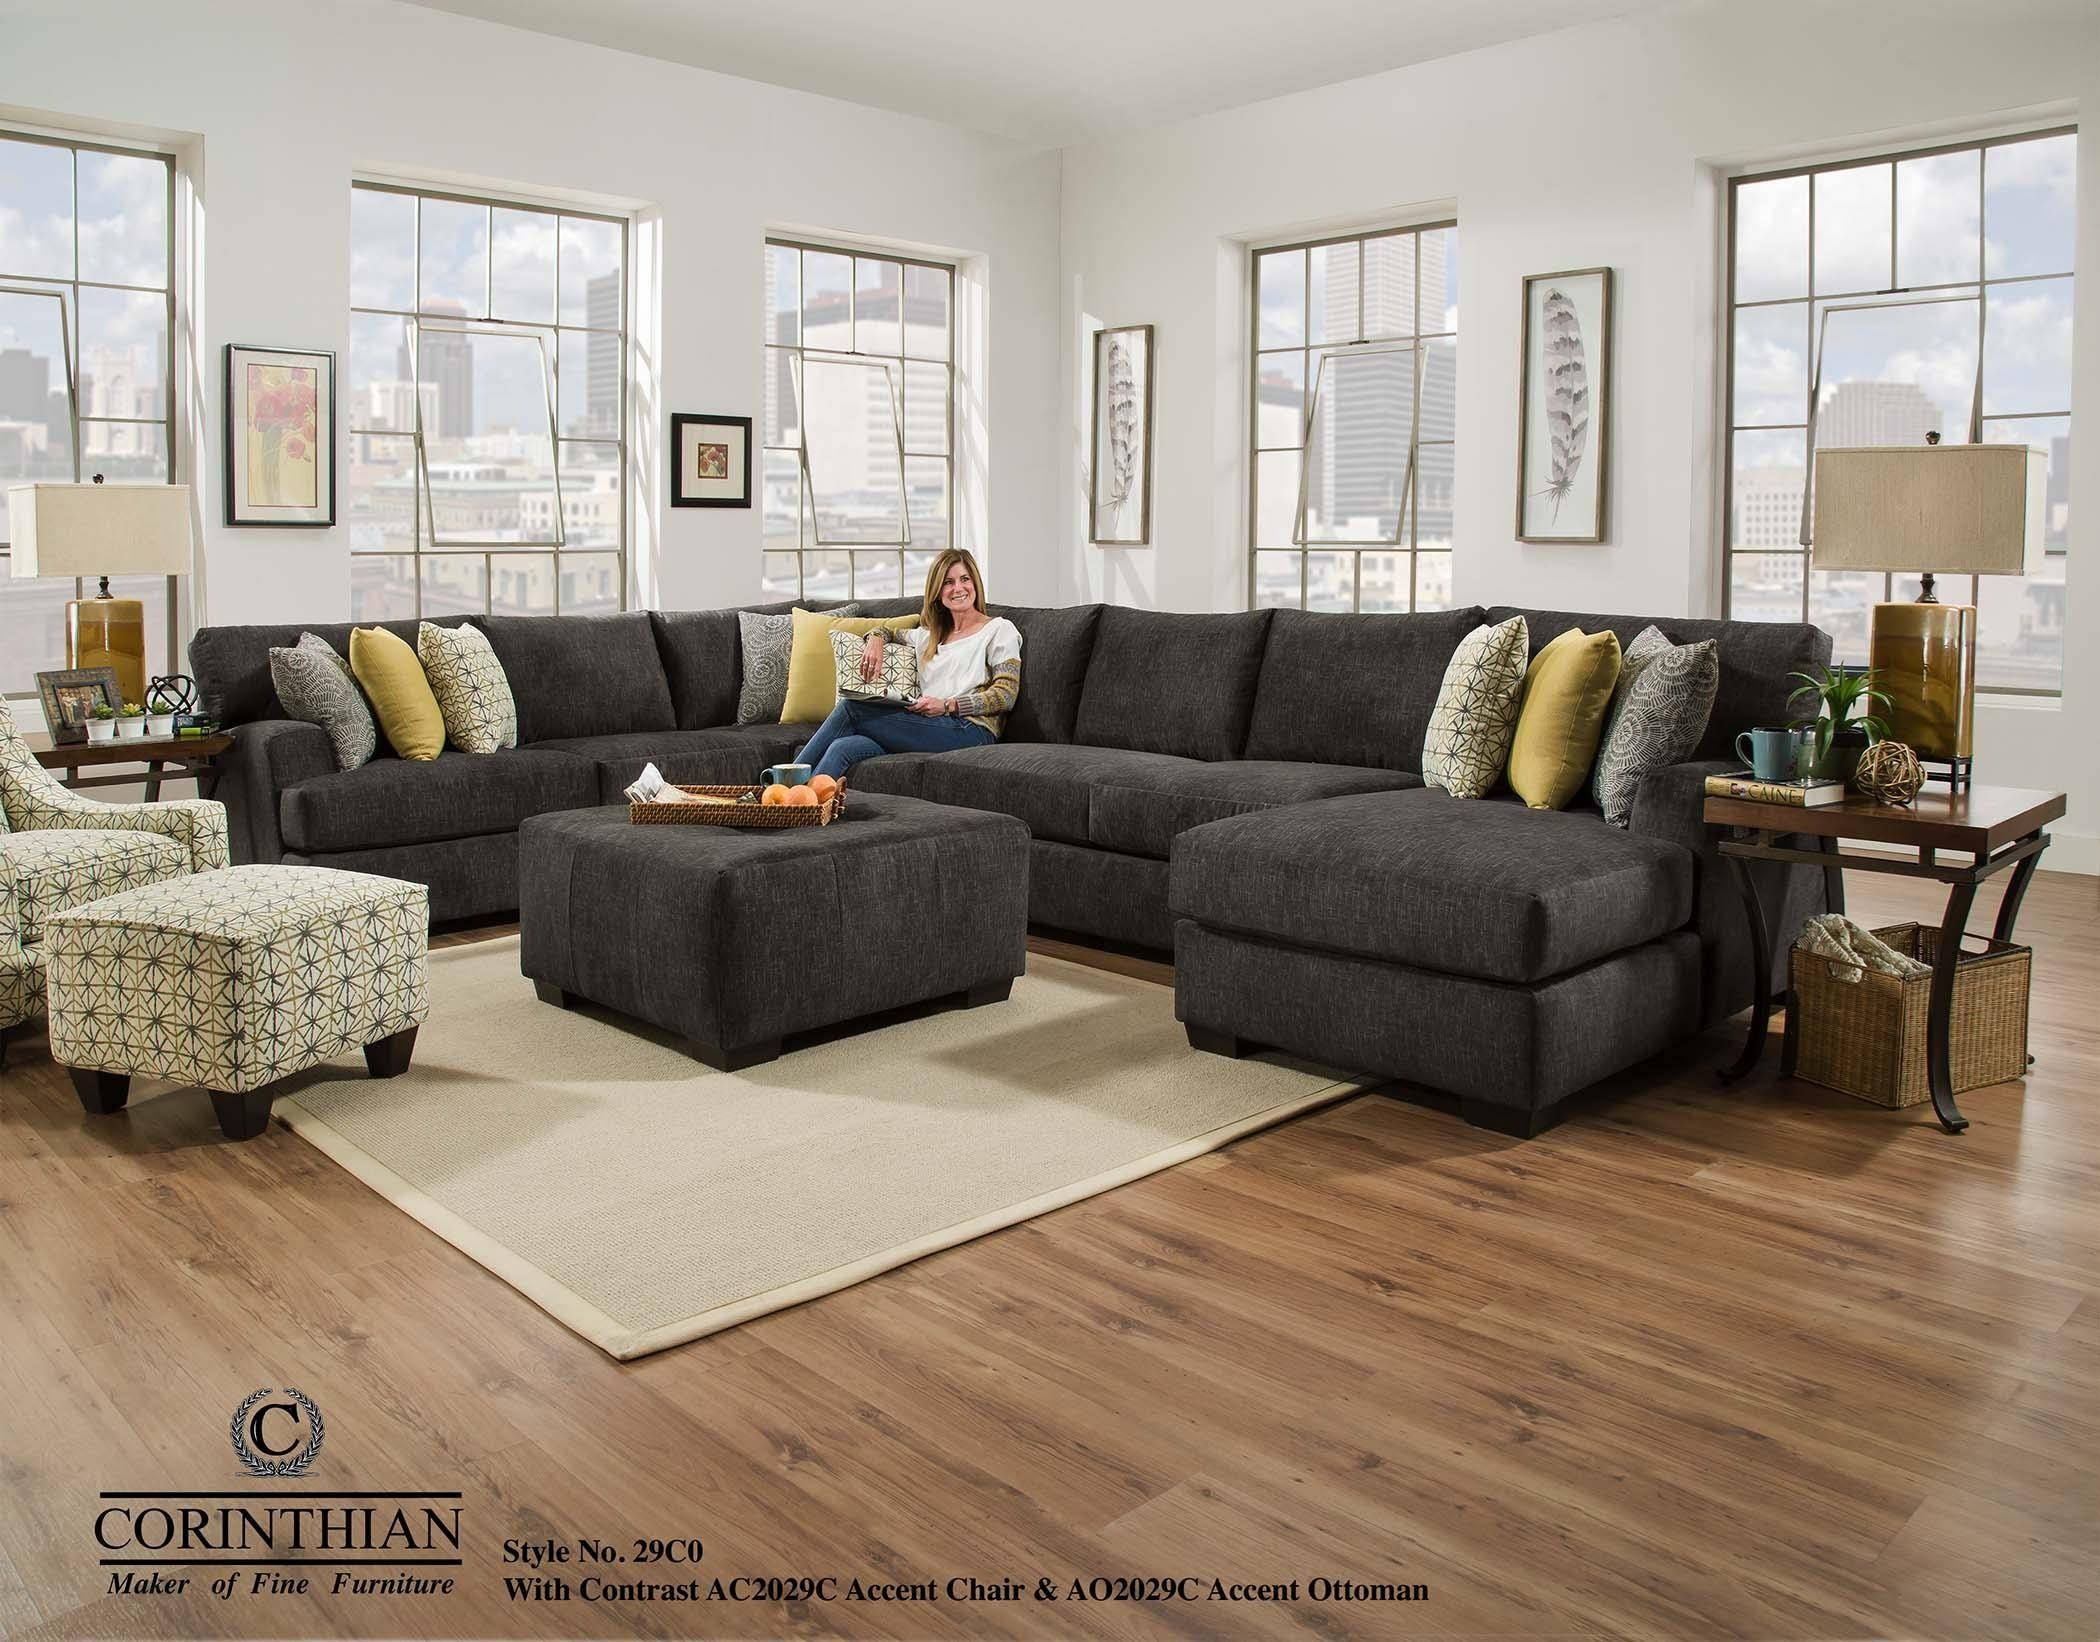 Sofas Center : Seat Sectional Sofa Phenomenal Image Ideas with regard to 7 Seat Sectional Sofa (Image 27 of 30)